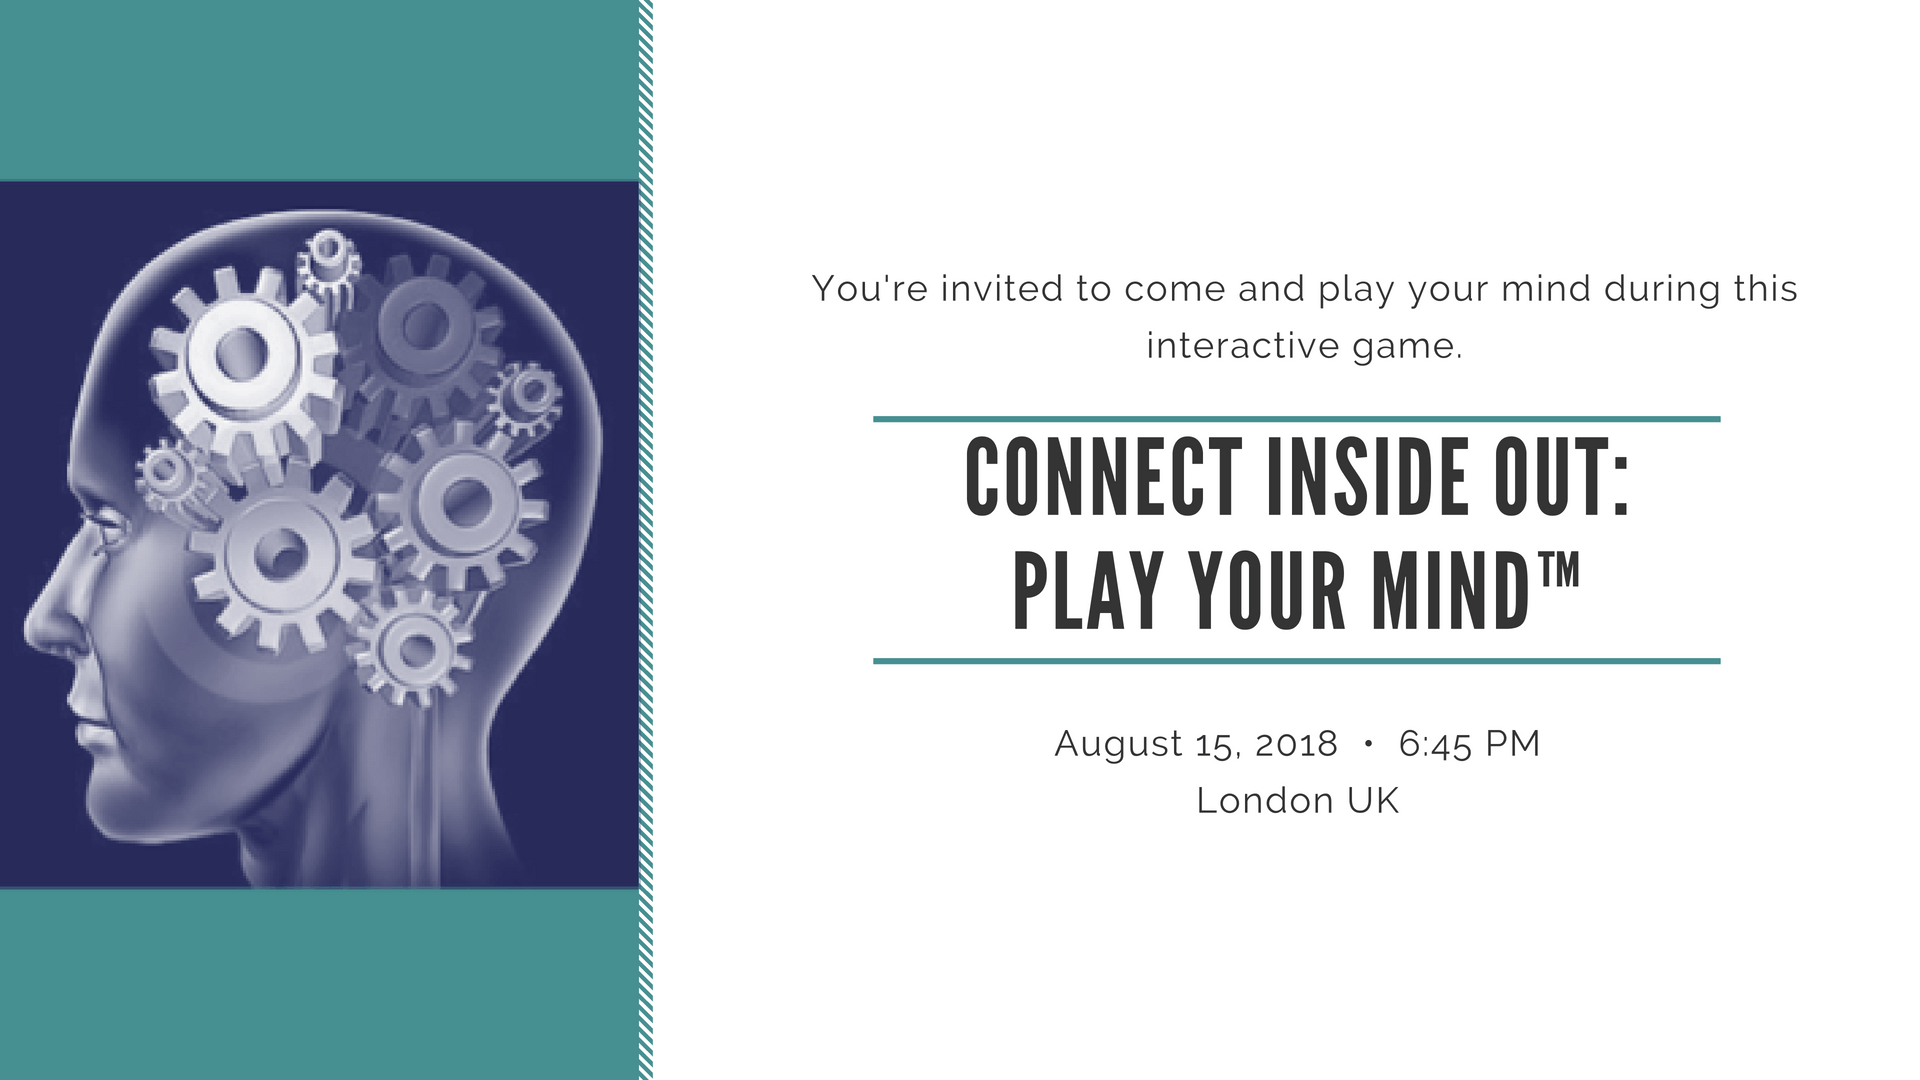 CONNECT INSIDE OUT: PLAY YOUR MIND